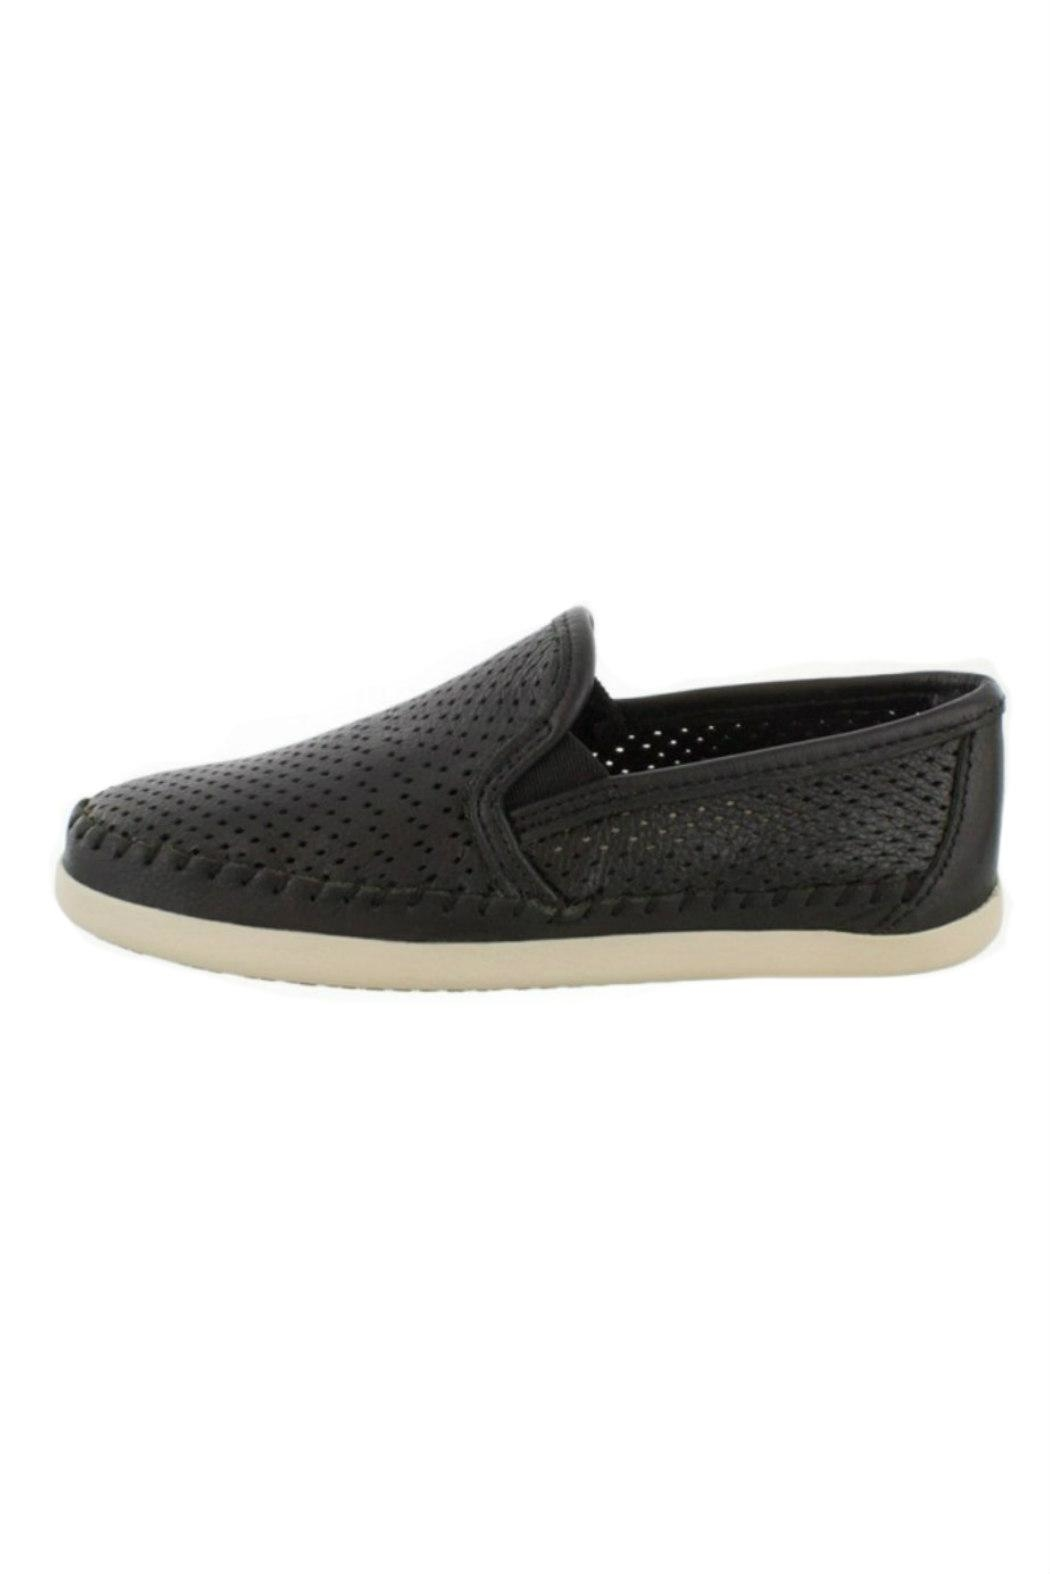 Minnetonka Perforated Leather Sneaker - Front Full Image